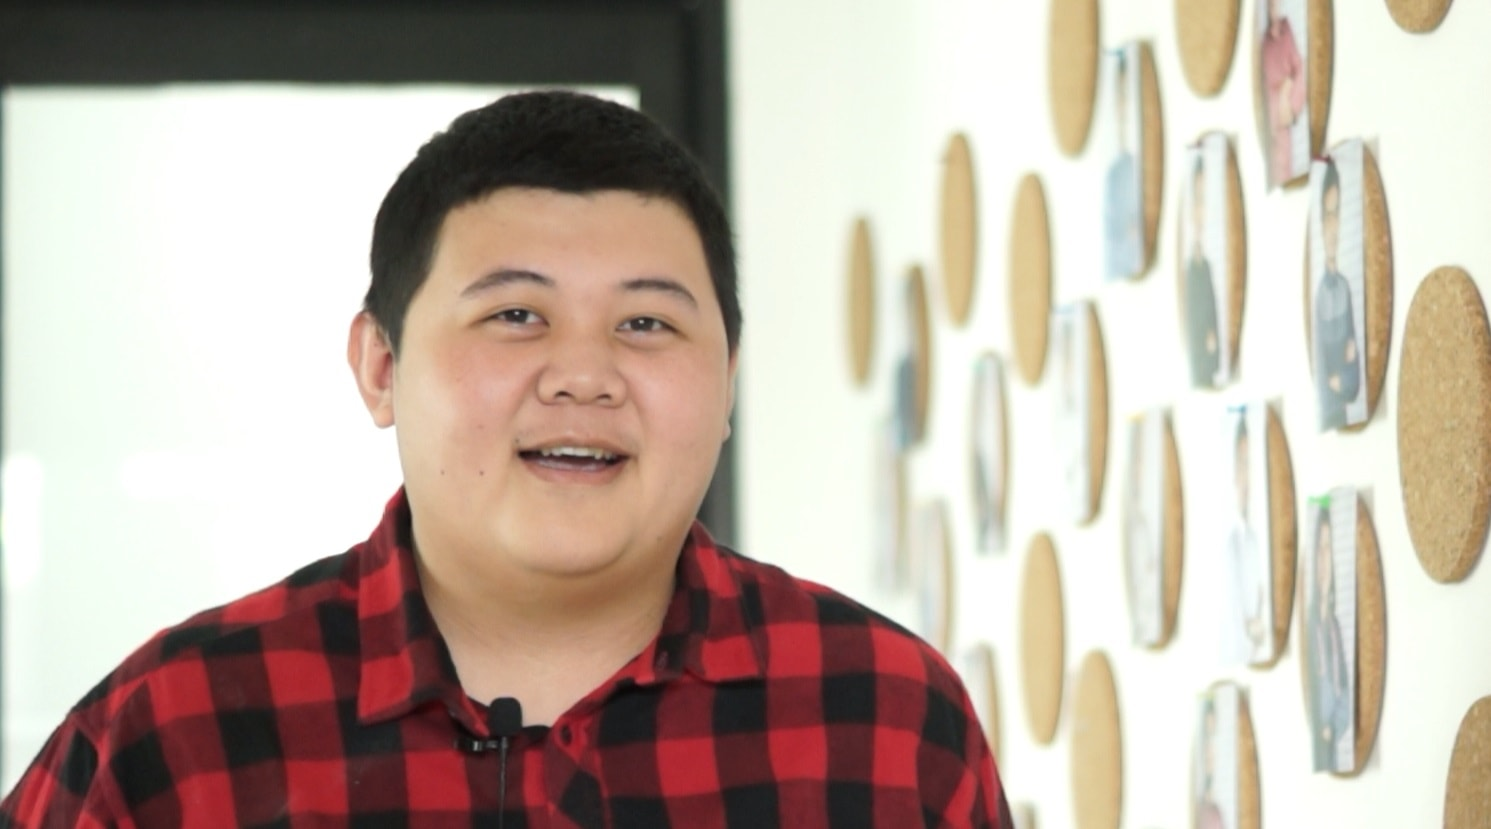 Meet our Alumni: Antoni Angga